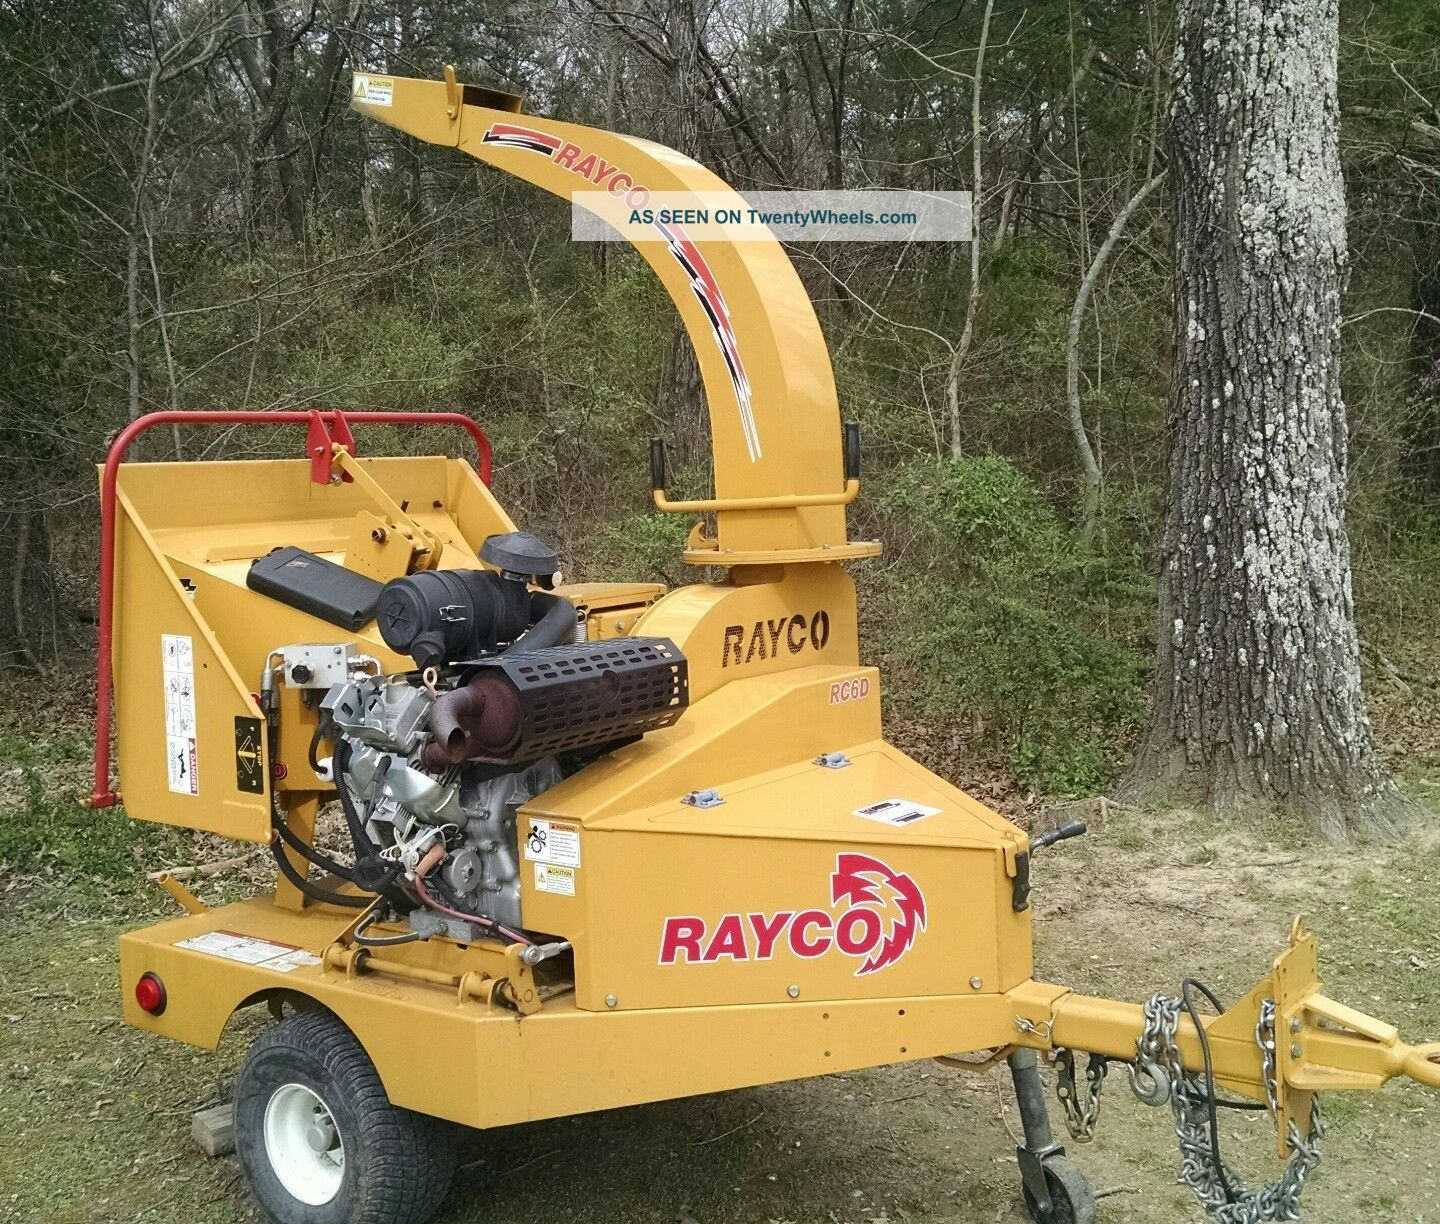 2011 Rayco Rc6d Brush Chipper Wood Chippers & Stump Grinders photo